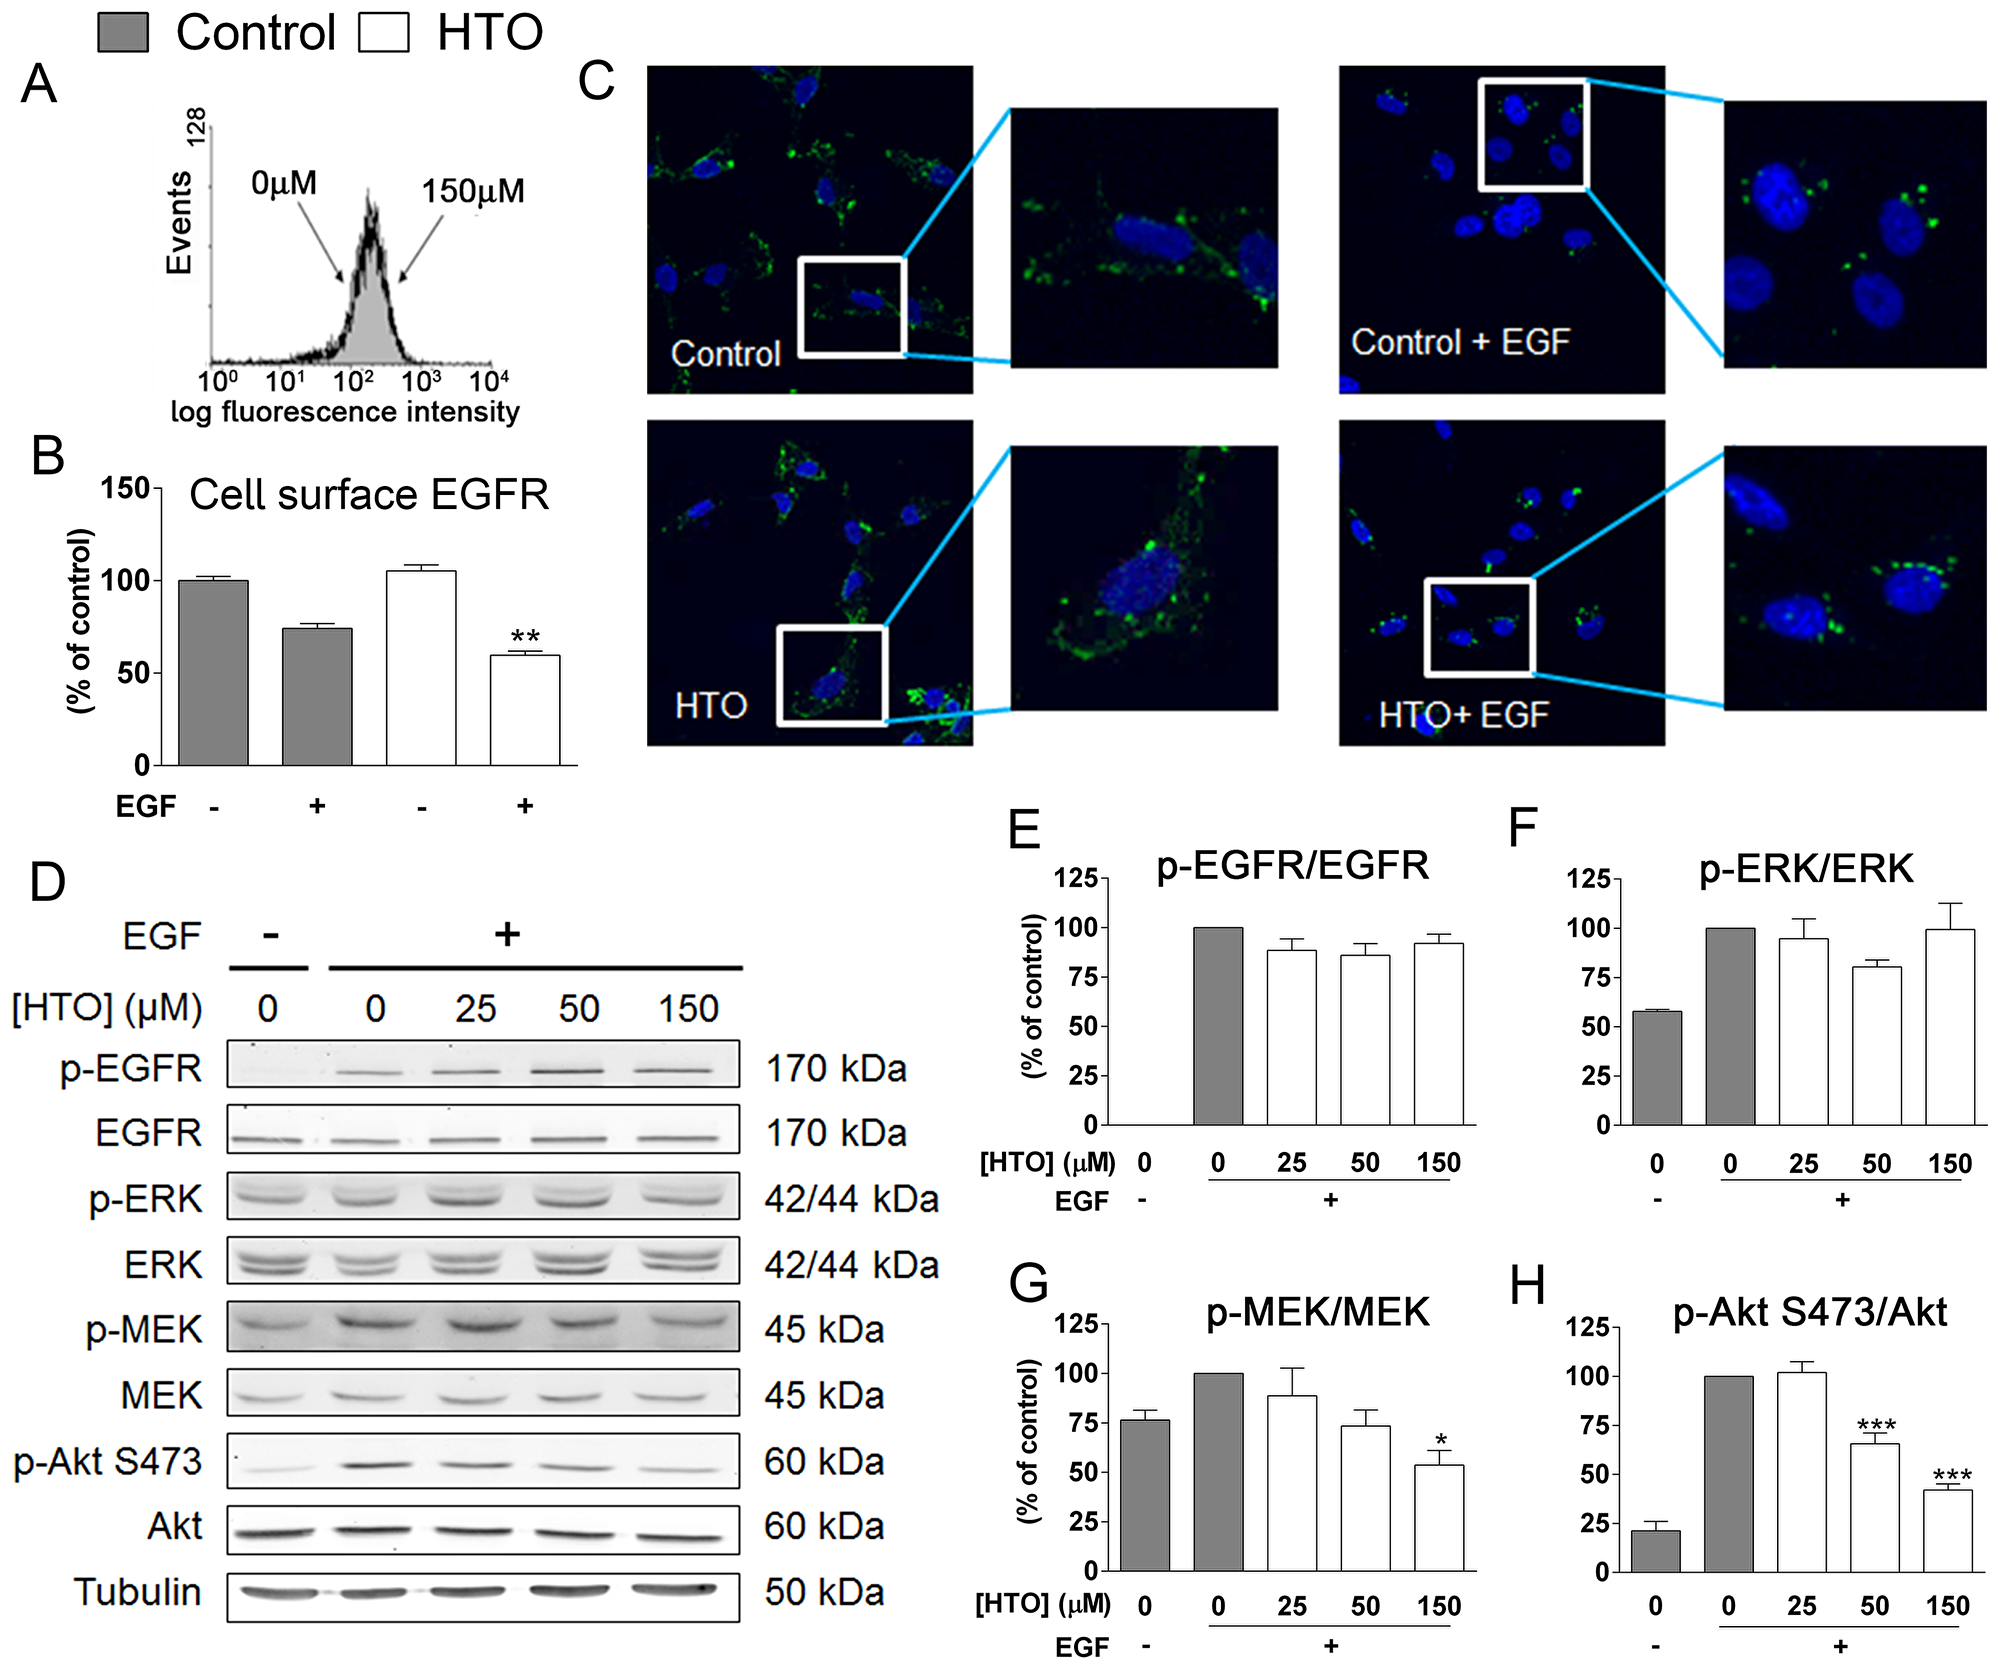 The effect of HTO on EGFR signaling.